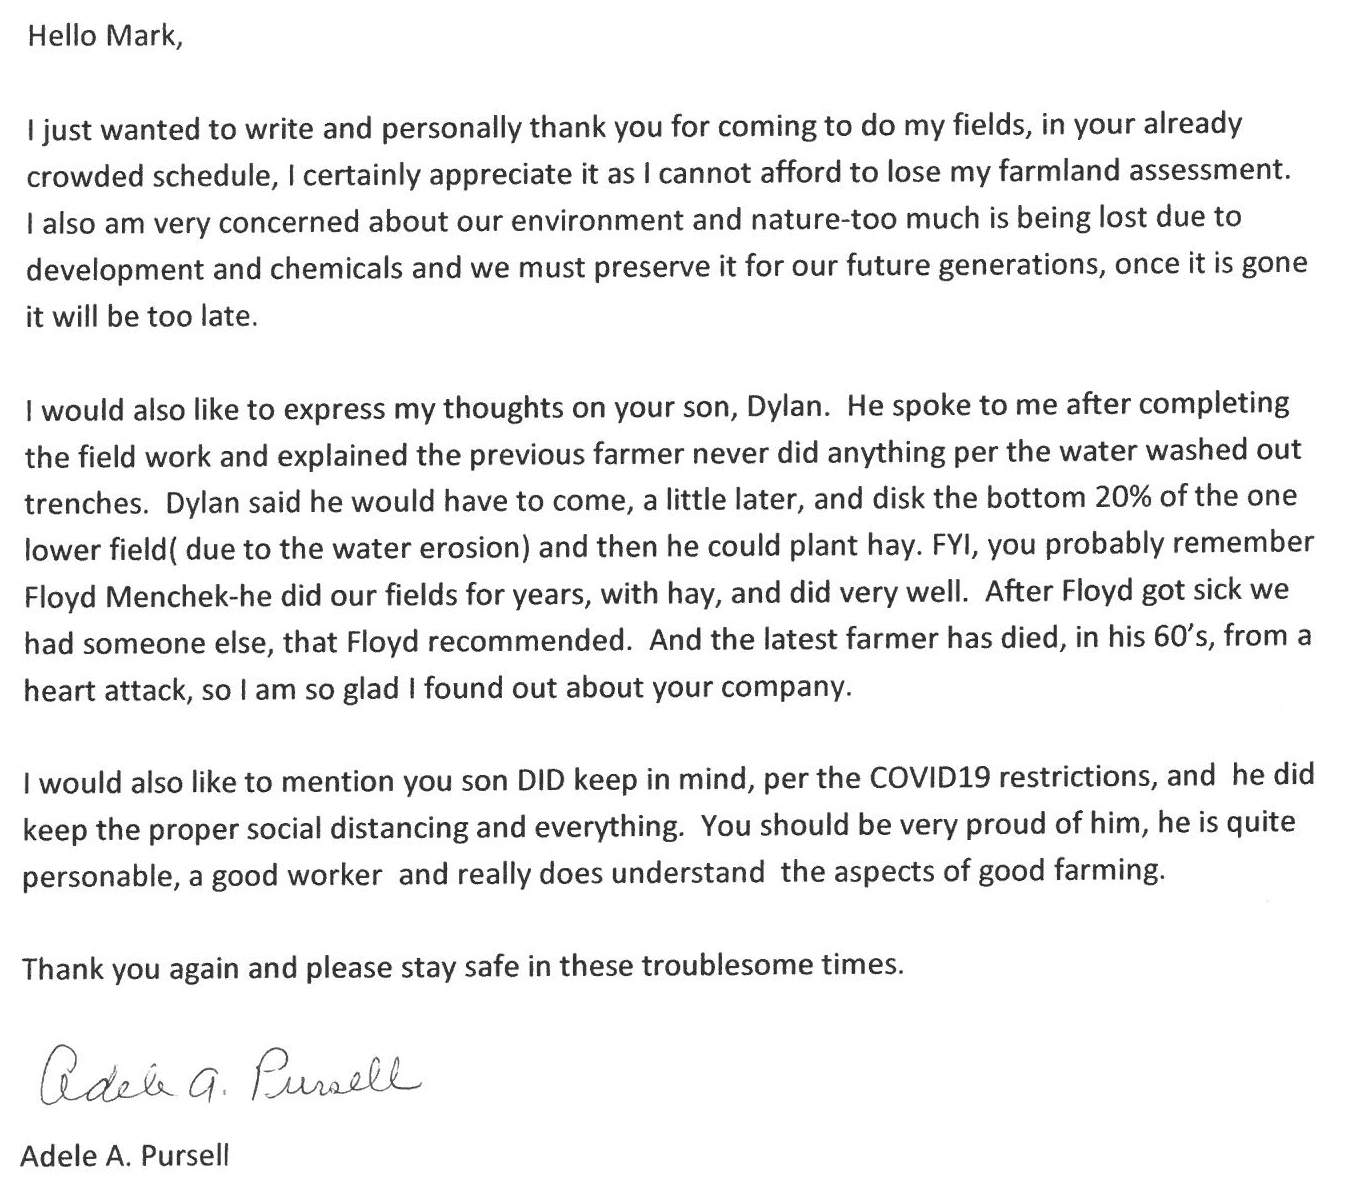 letter sent from Adele Pursell of Hopewell, NJ